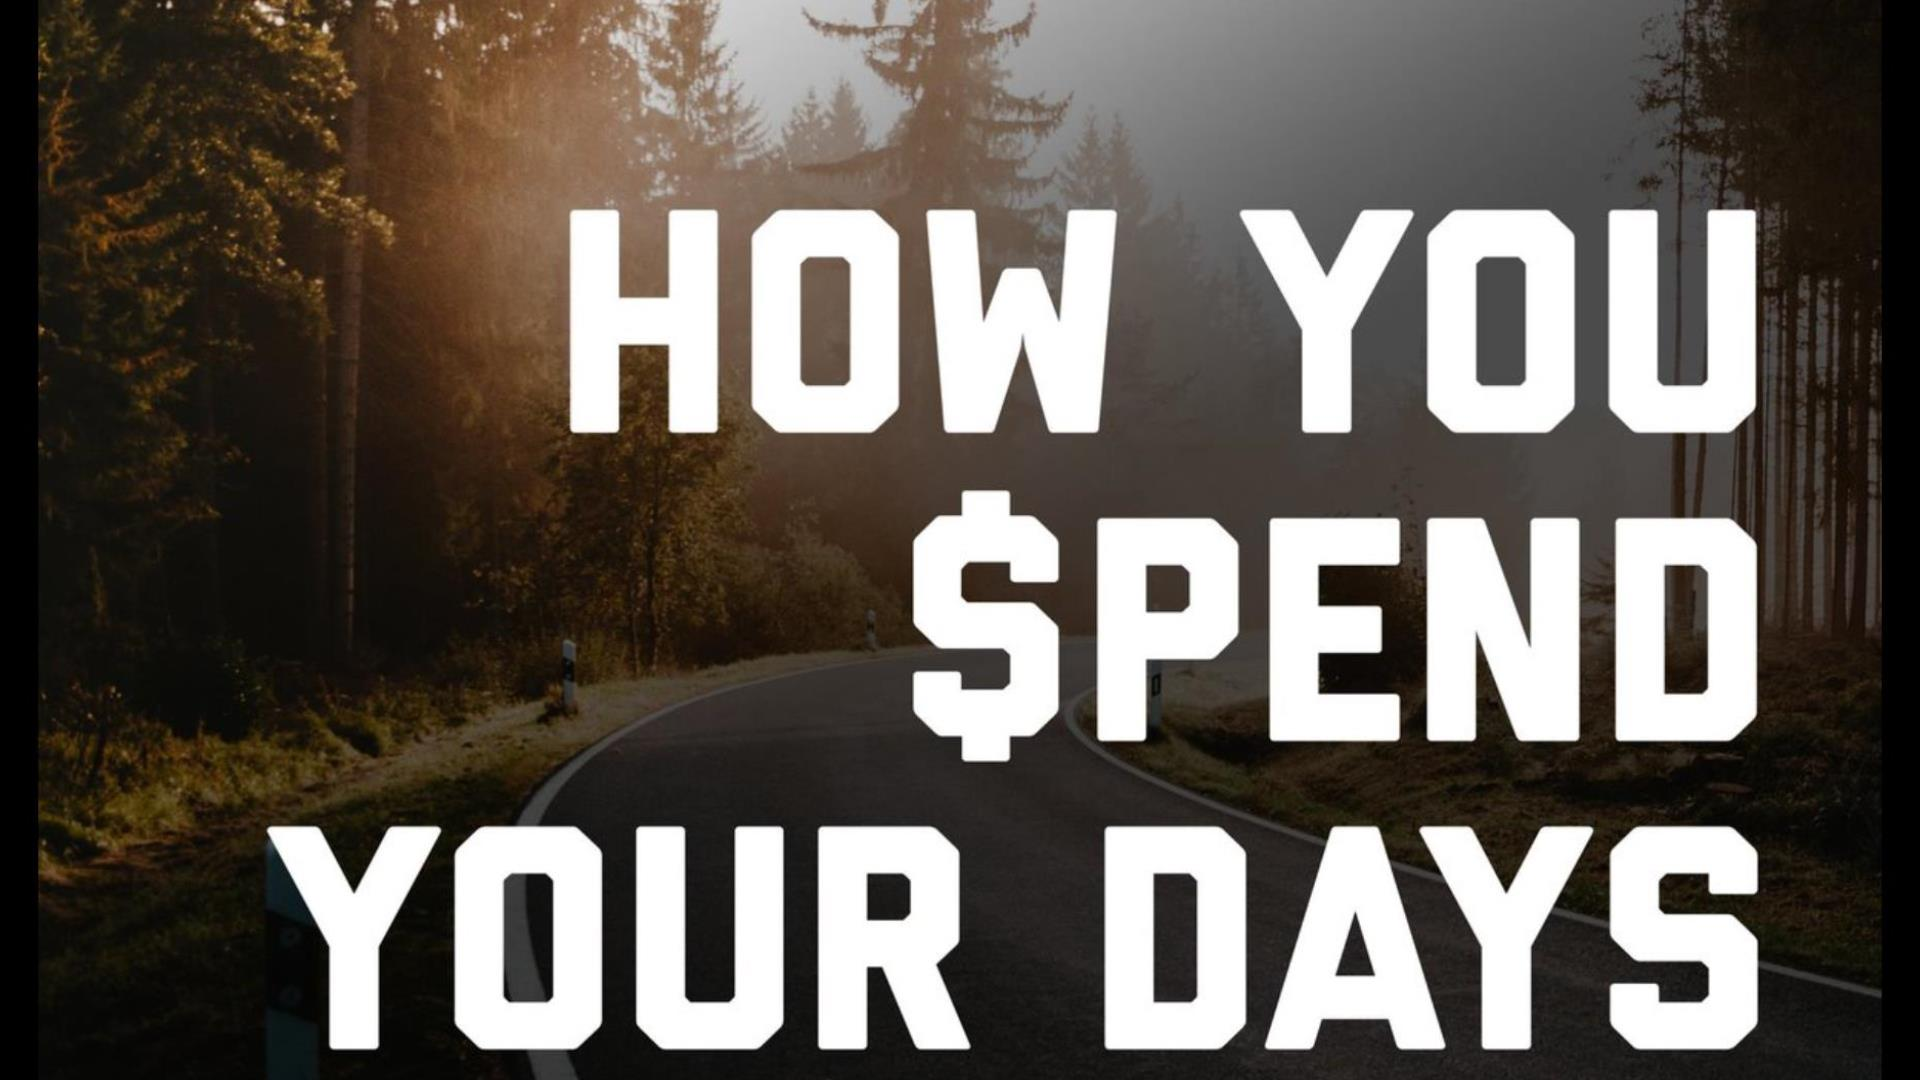 How To Spend Your Days